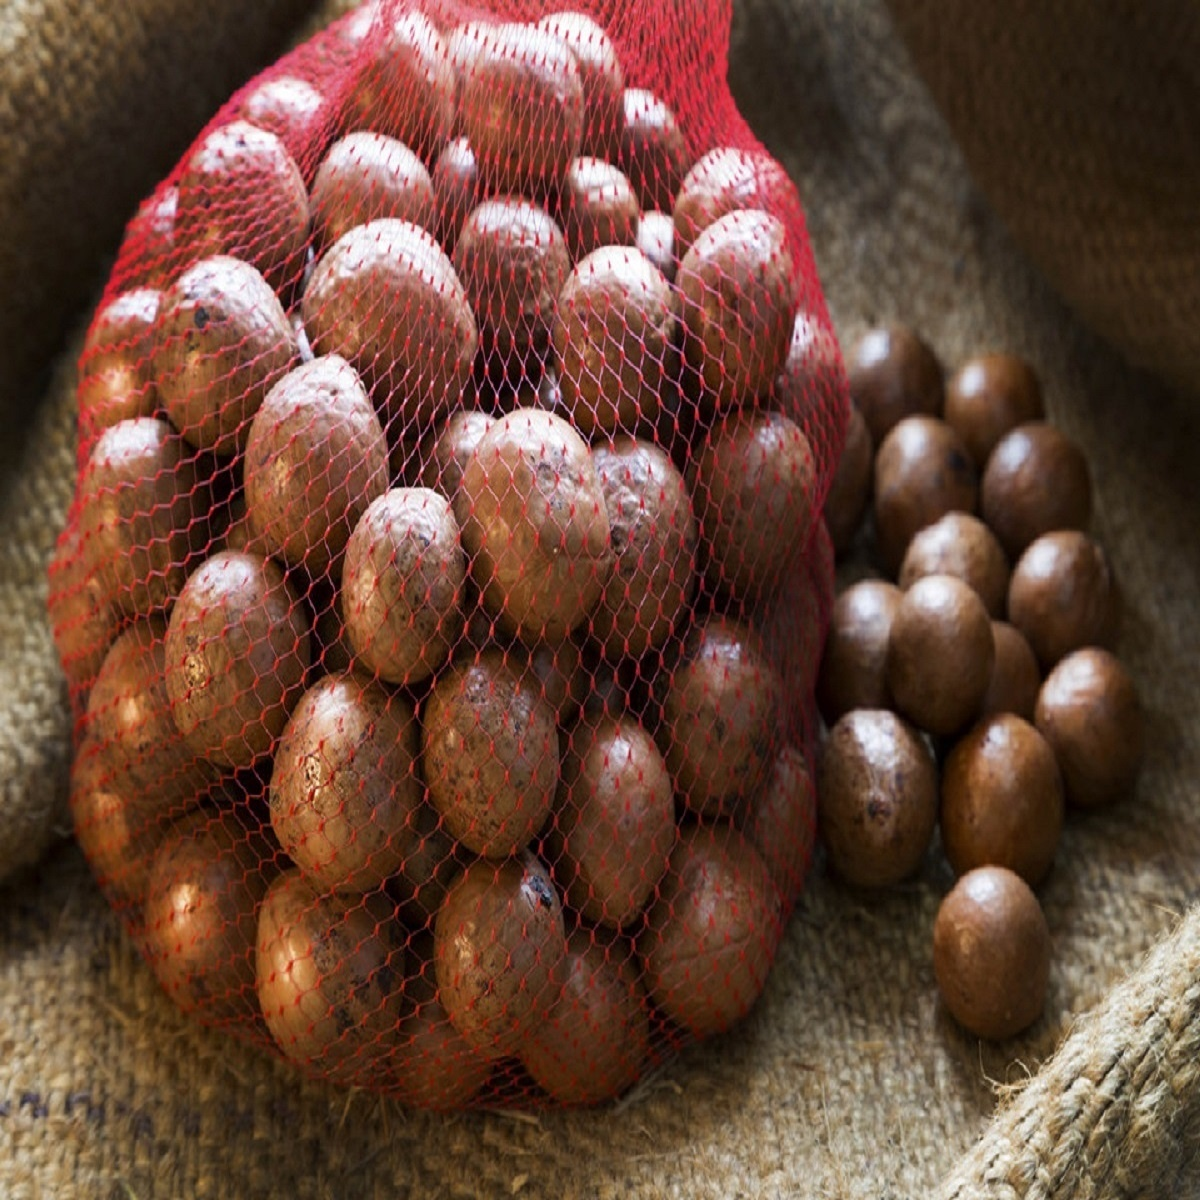 Best High Quality Macadamia